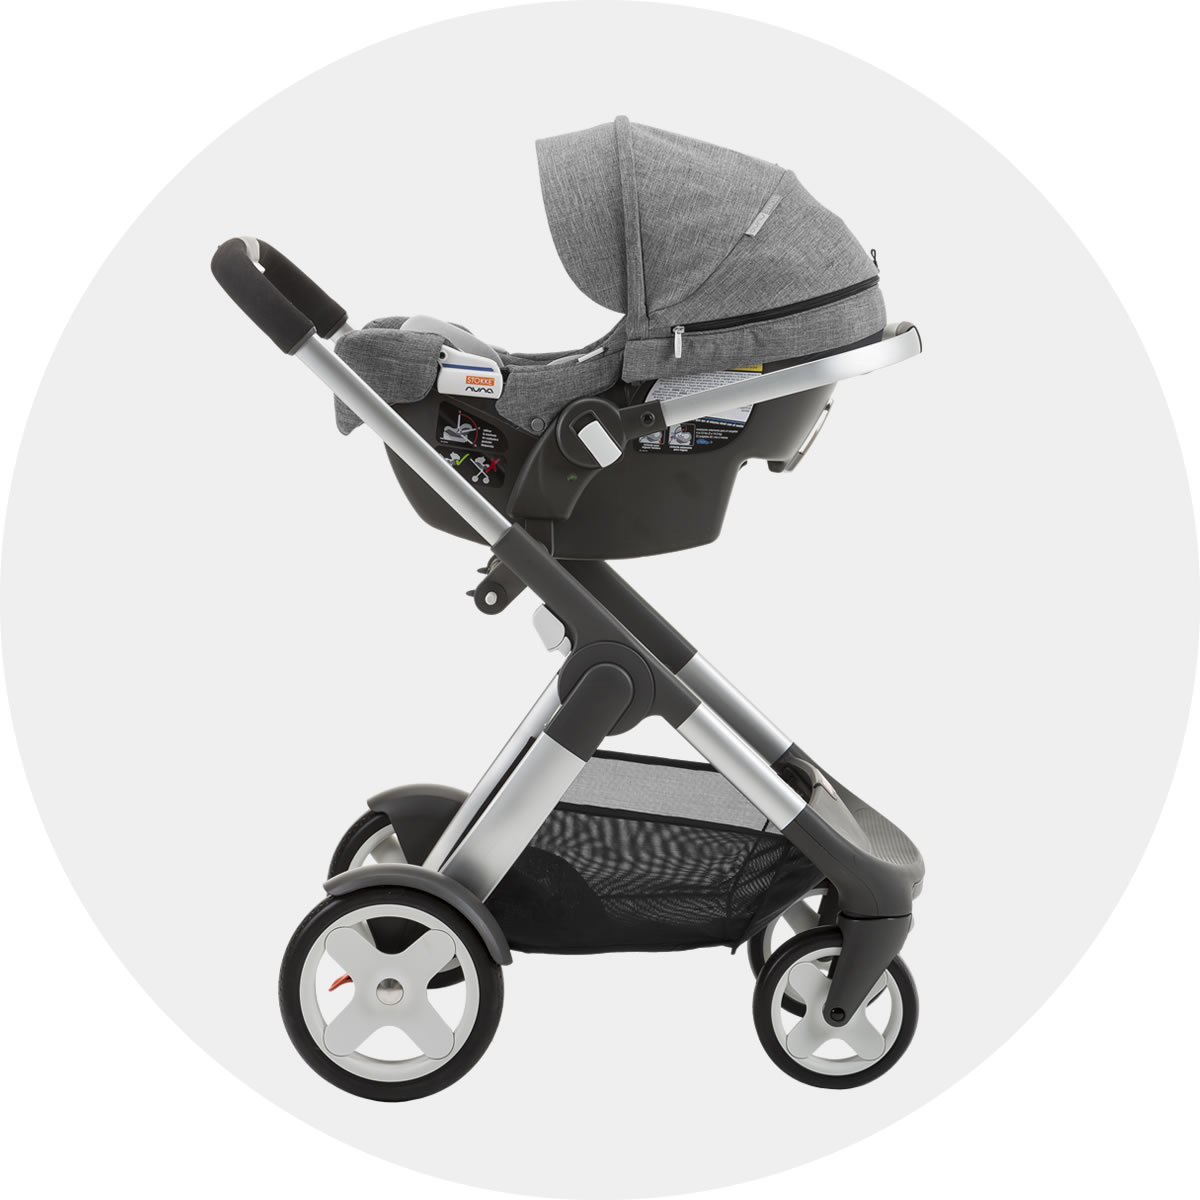 All Terrain Stroller With Car Seat